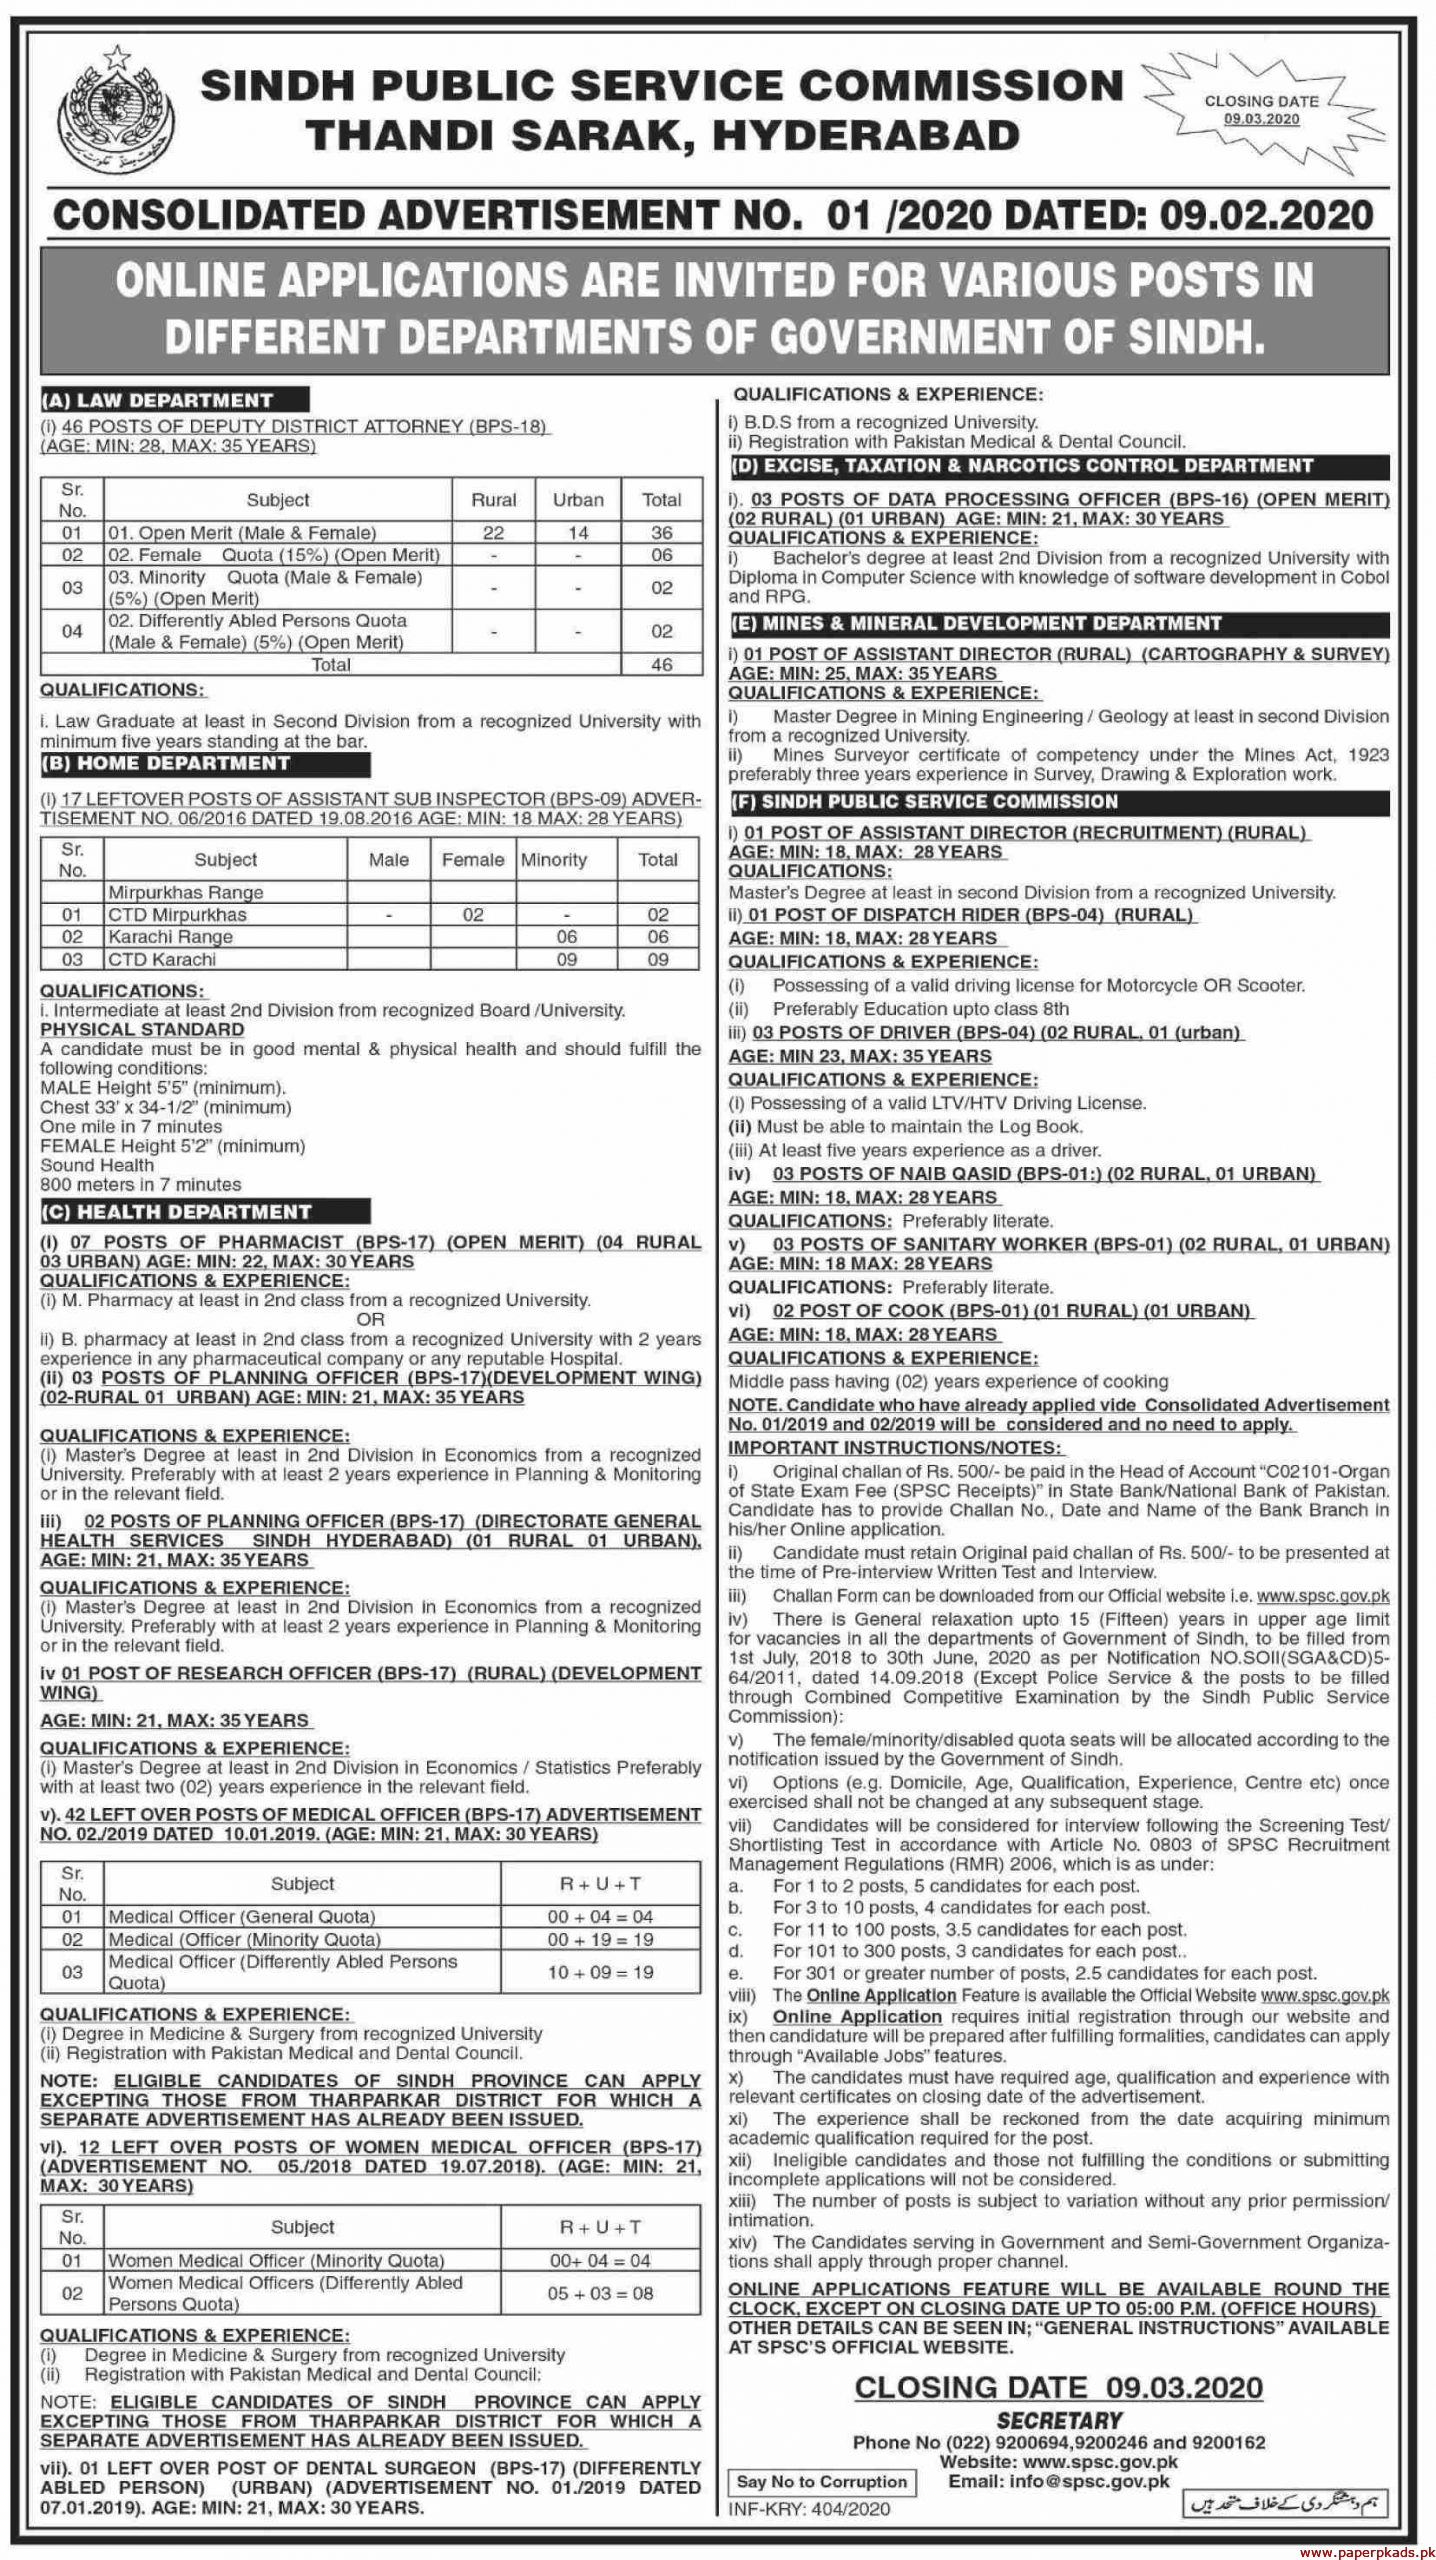 Sindh Public Service Commission SPSC Hyderabad Jobs 2020 Latest